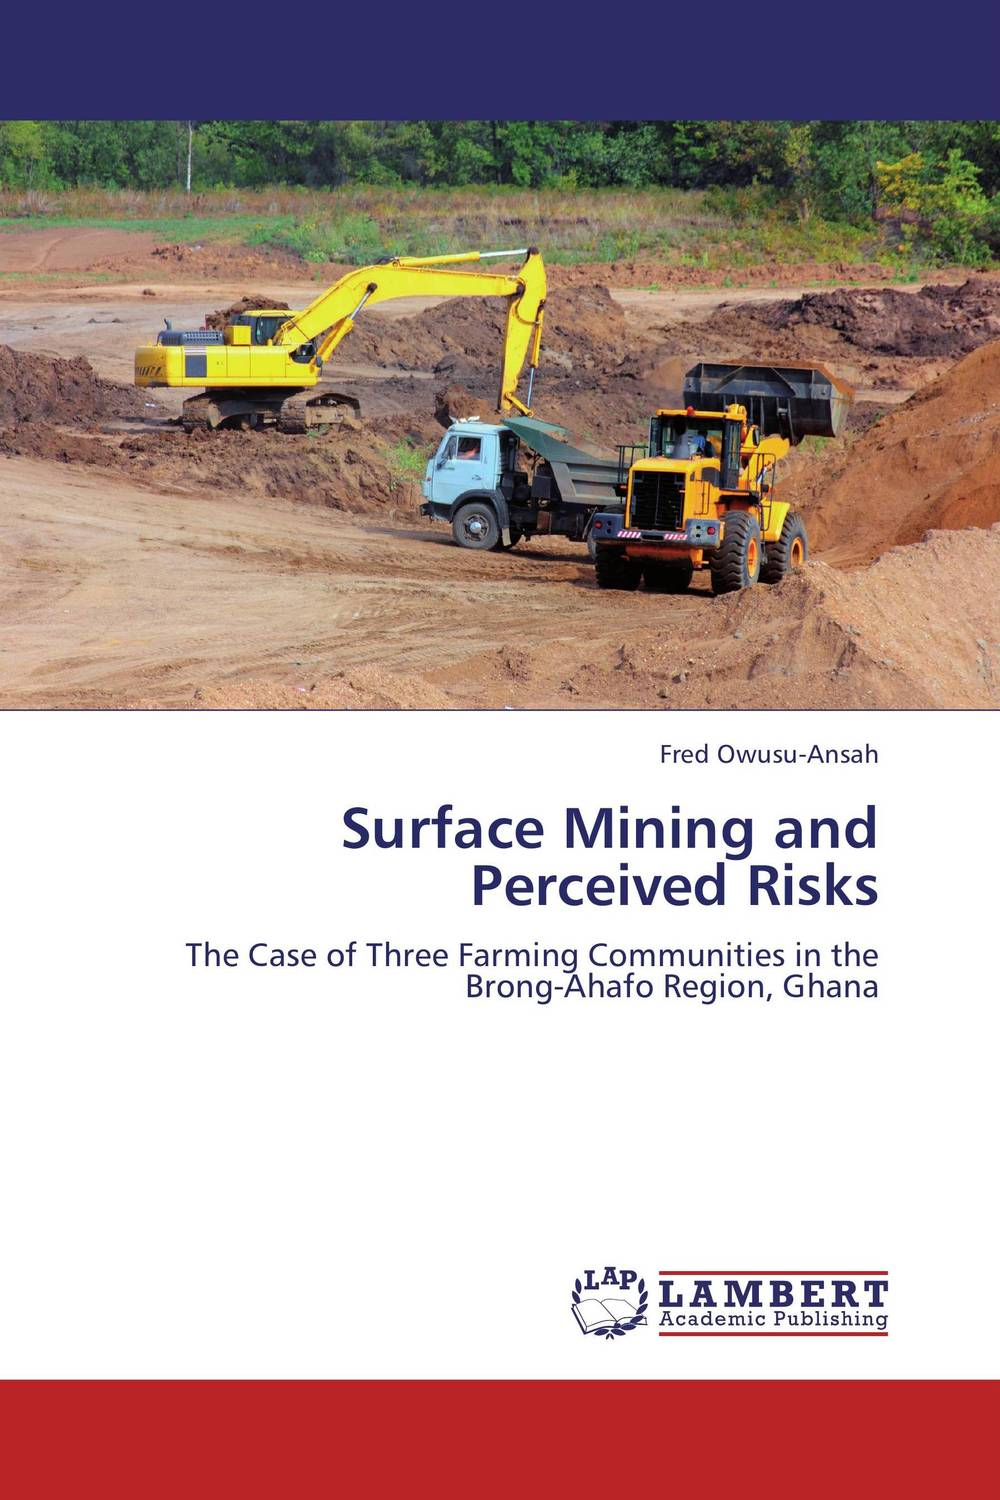 Surface Mining and Perceived Risks presidential nominee will address a gathering